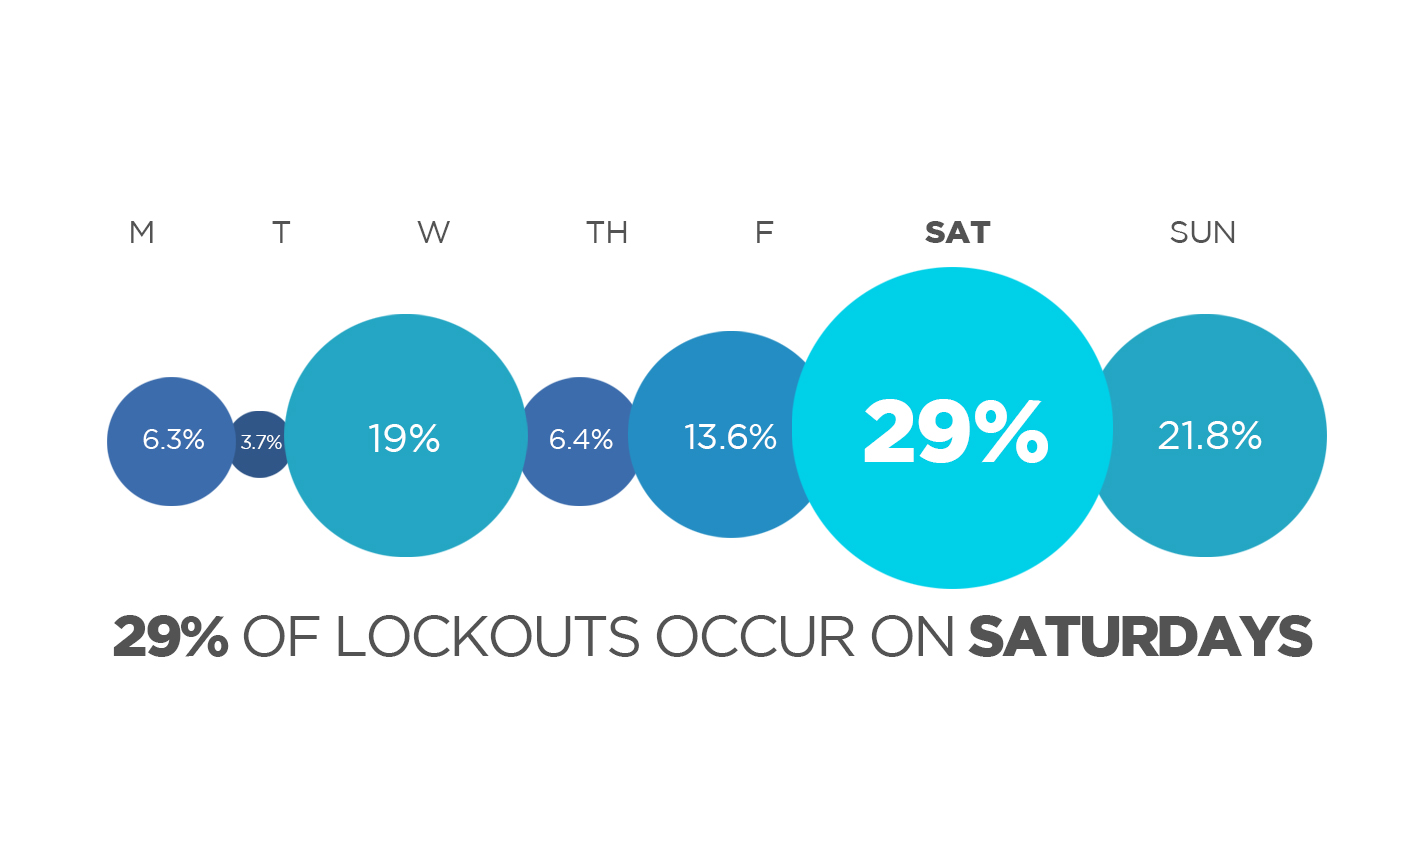 Our locked out, lost keys infographic